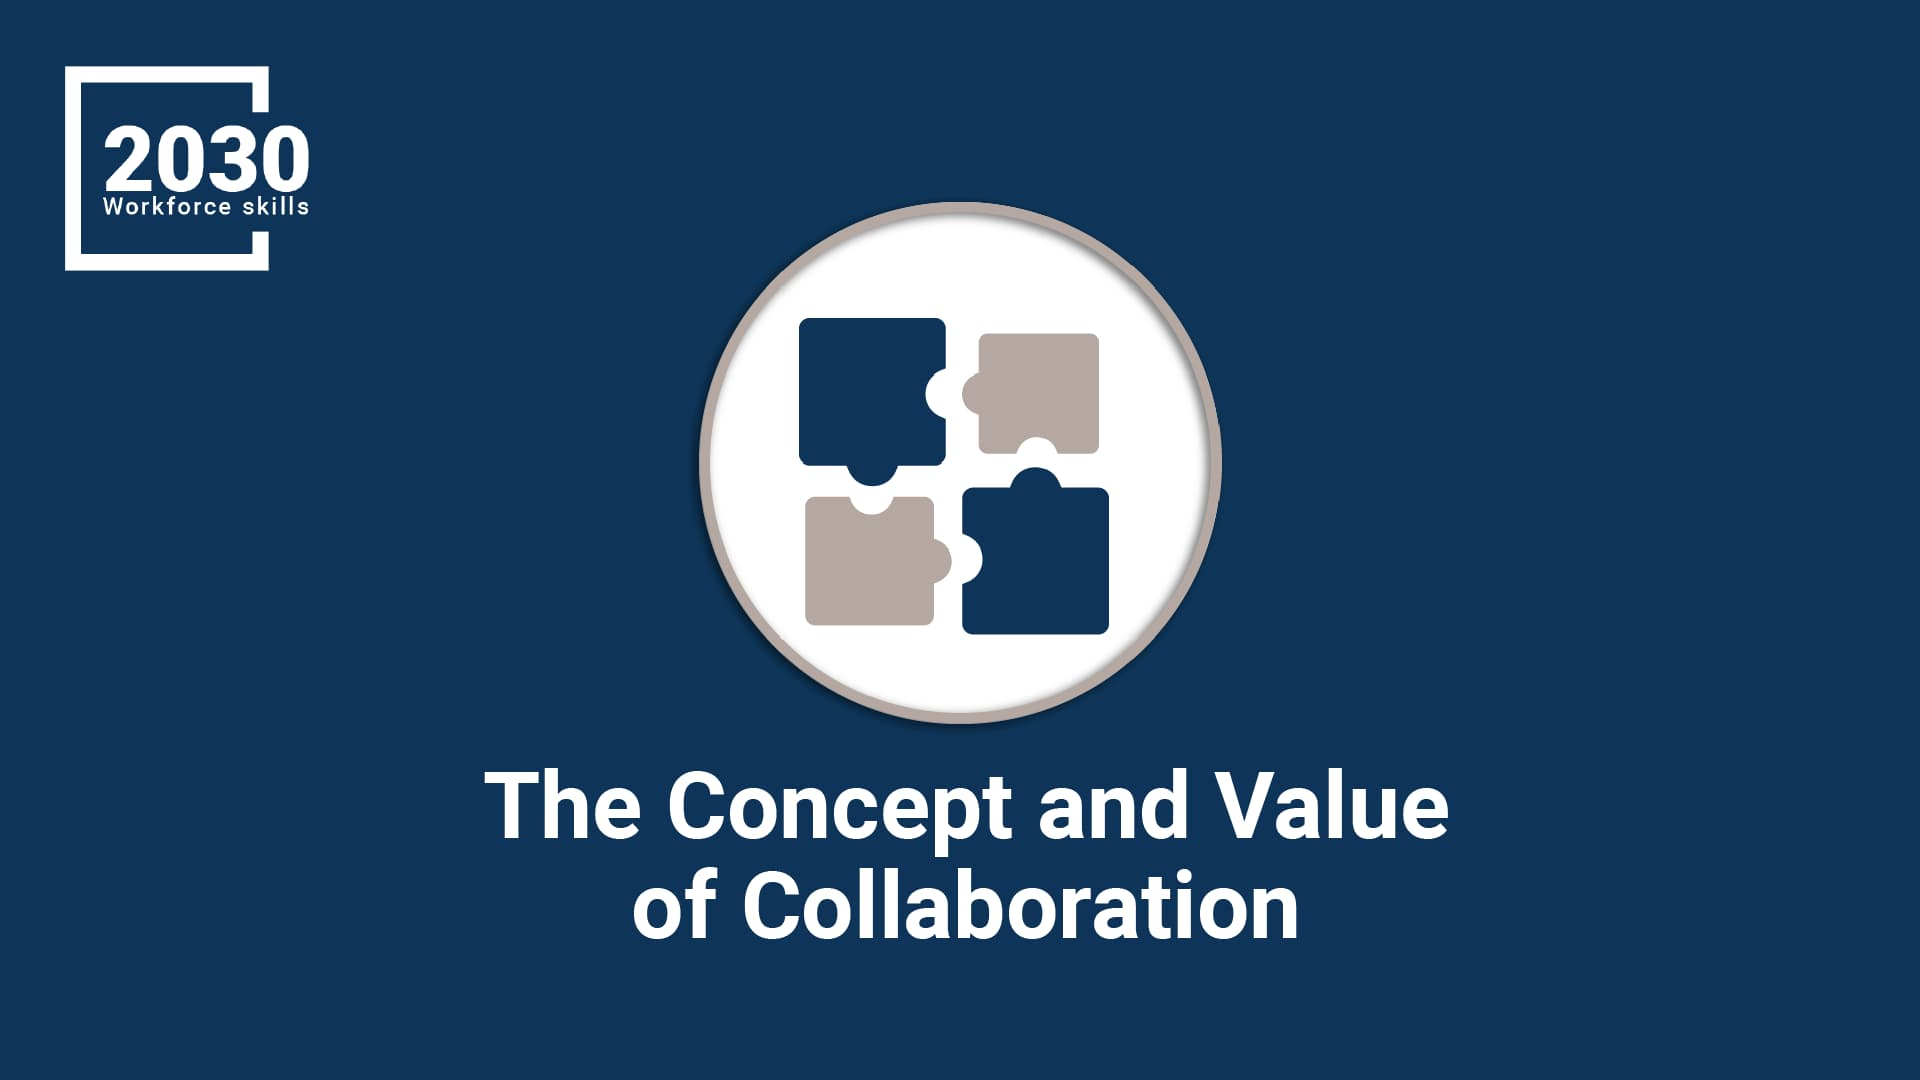 https://omnistackconnect.omnihrc.com/product/the-concept-and-value-of-collaboration